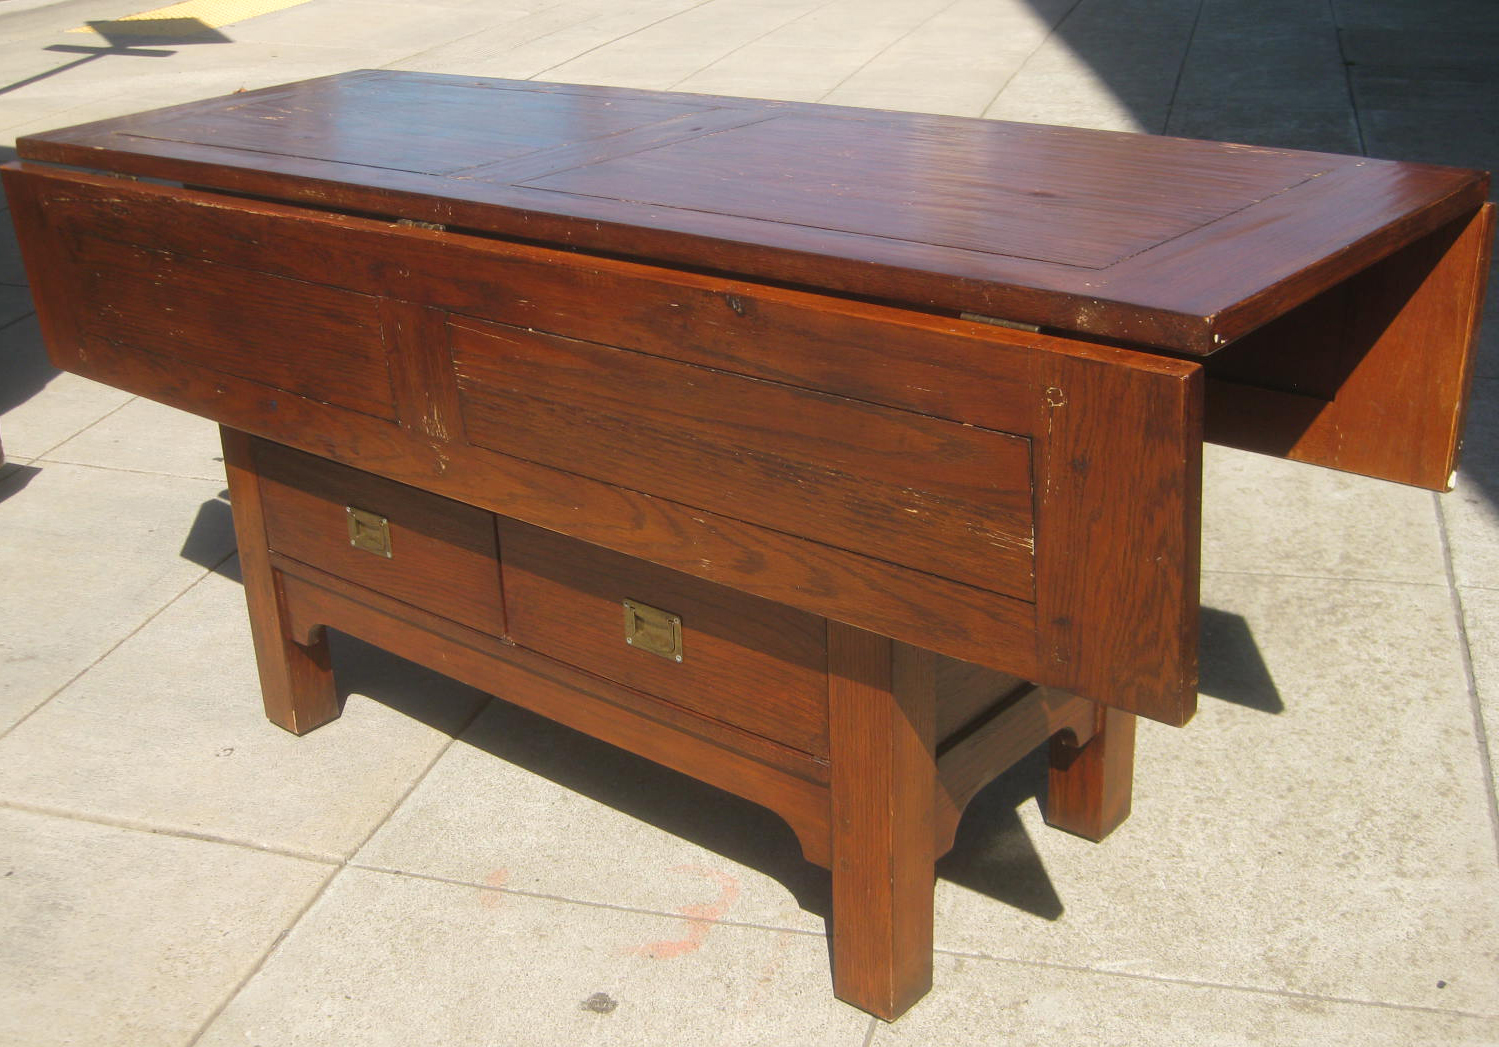 Uhuru furniture collectibles sold country kitchen drop leaf table 225 - Drop leaf kitchen table ...